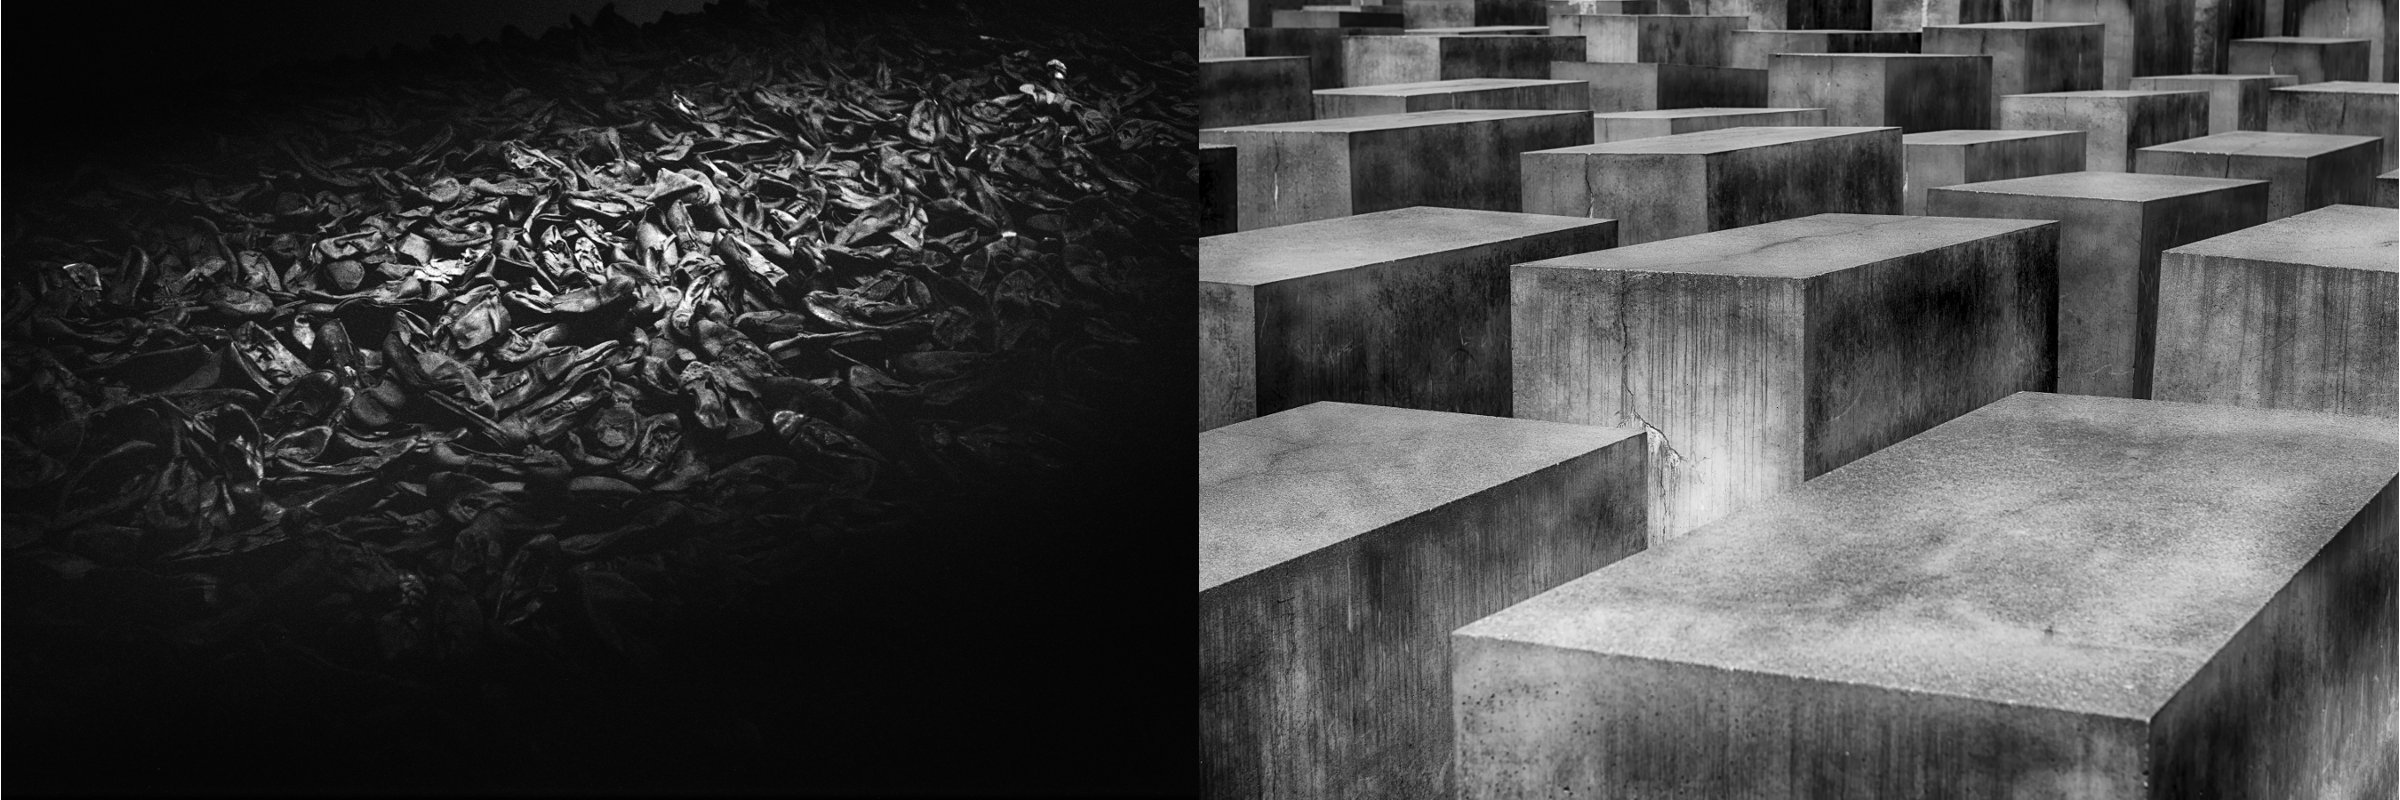 (Left: Title: Shoes taken off of the Jews-Holocaust Museum | Author: rpavich | Source: rpavich | License: CC BY 2.0) (Right: Berlin Holocaust Memorial)